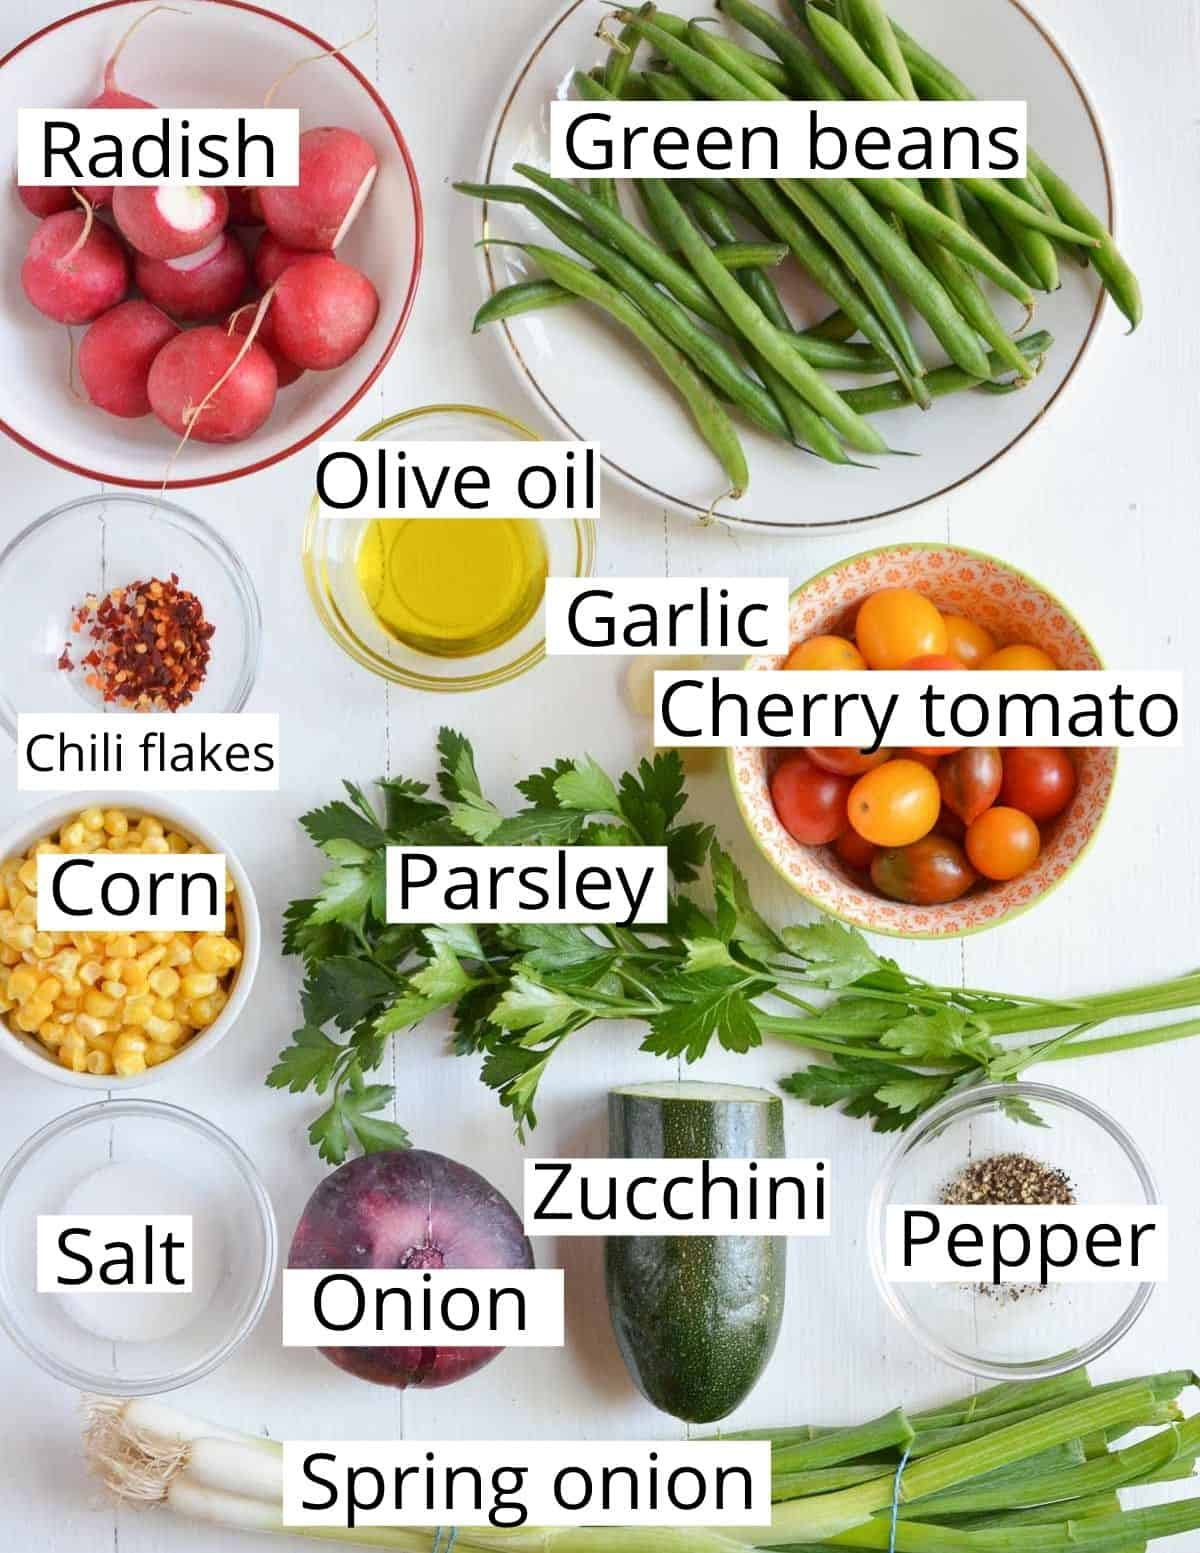 ingredients listed to make ciambotta from scratch